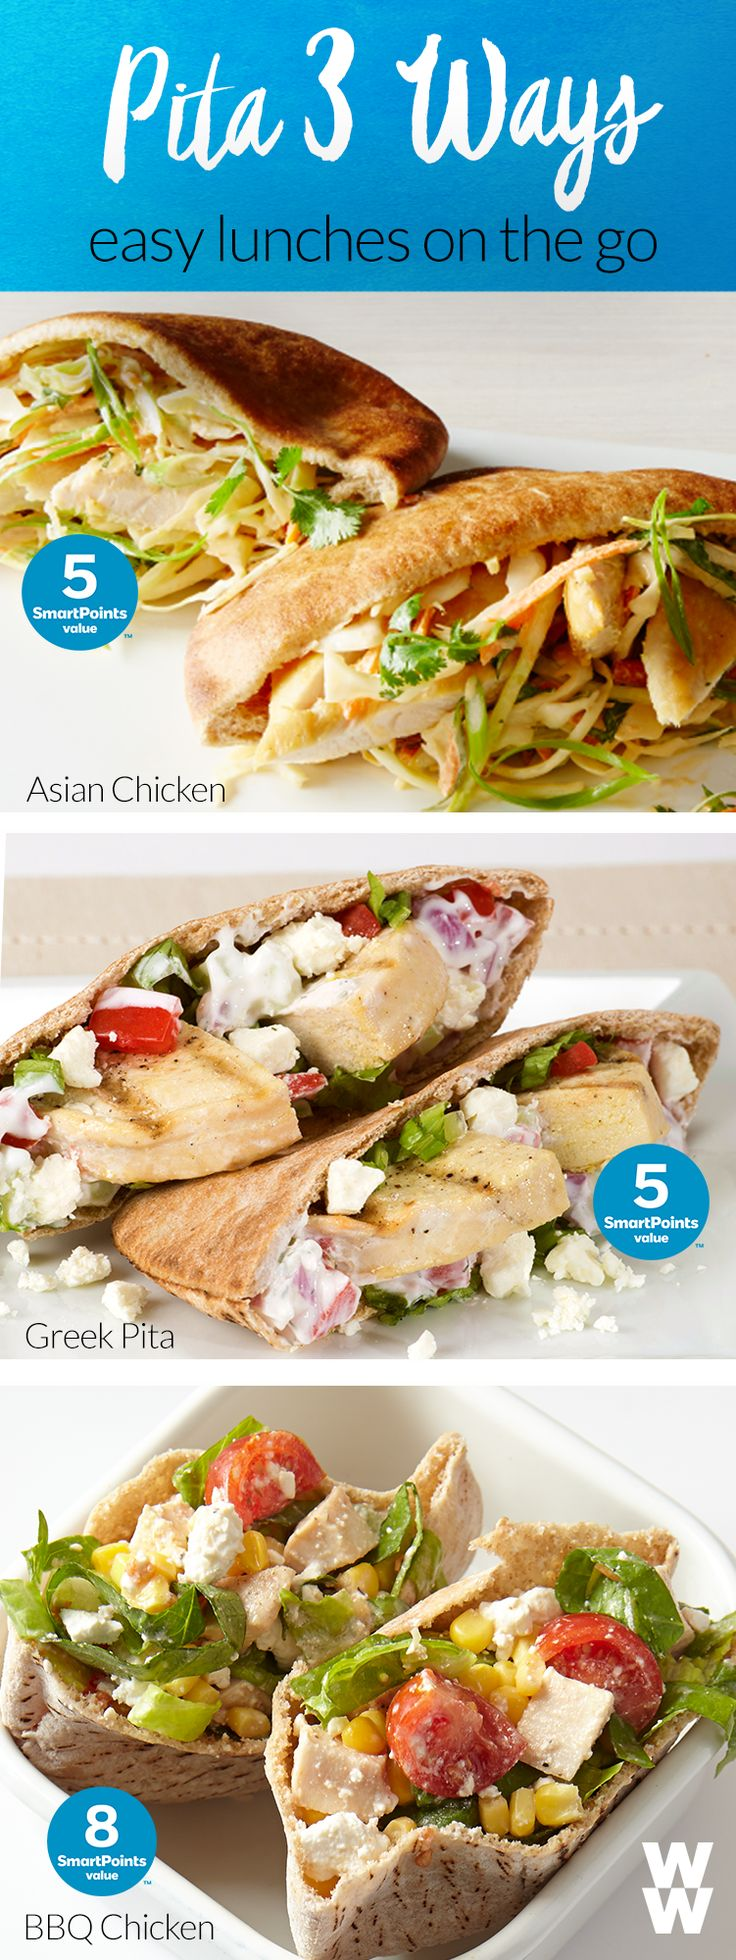 One ingredient- 3 different tasty recipes. Switch up your lunch routine with these three ways to fill a pita. Tap to learn how to make BBQ Chicken, Greek & Asian chicken pita sandwiches.